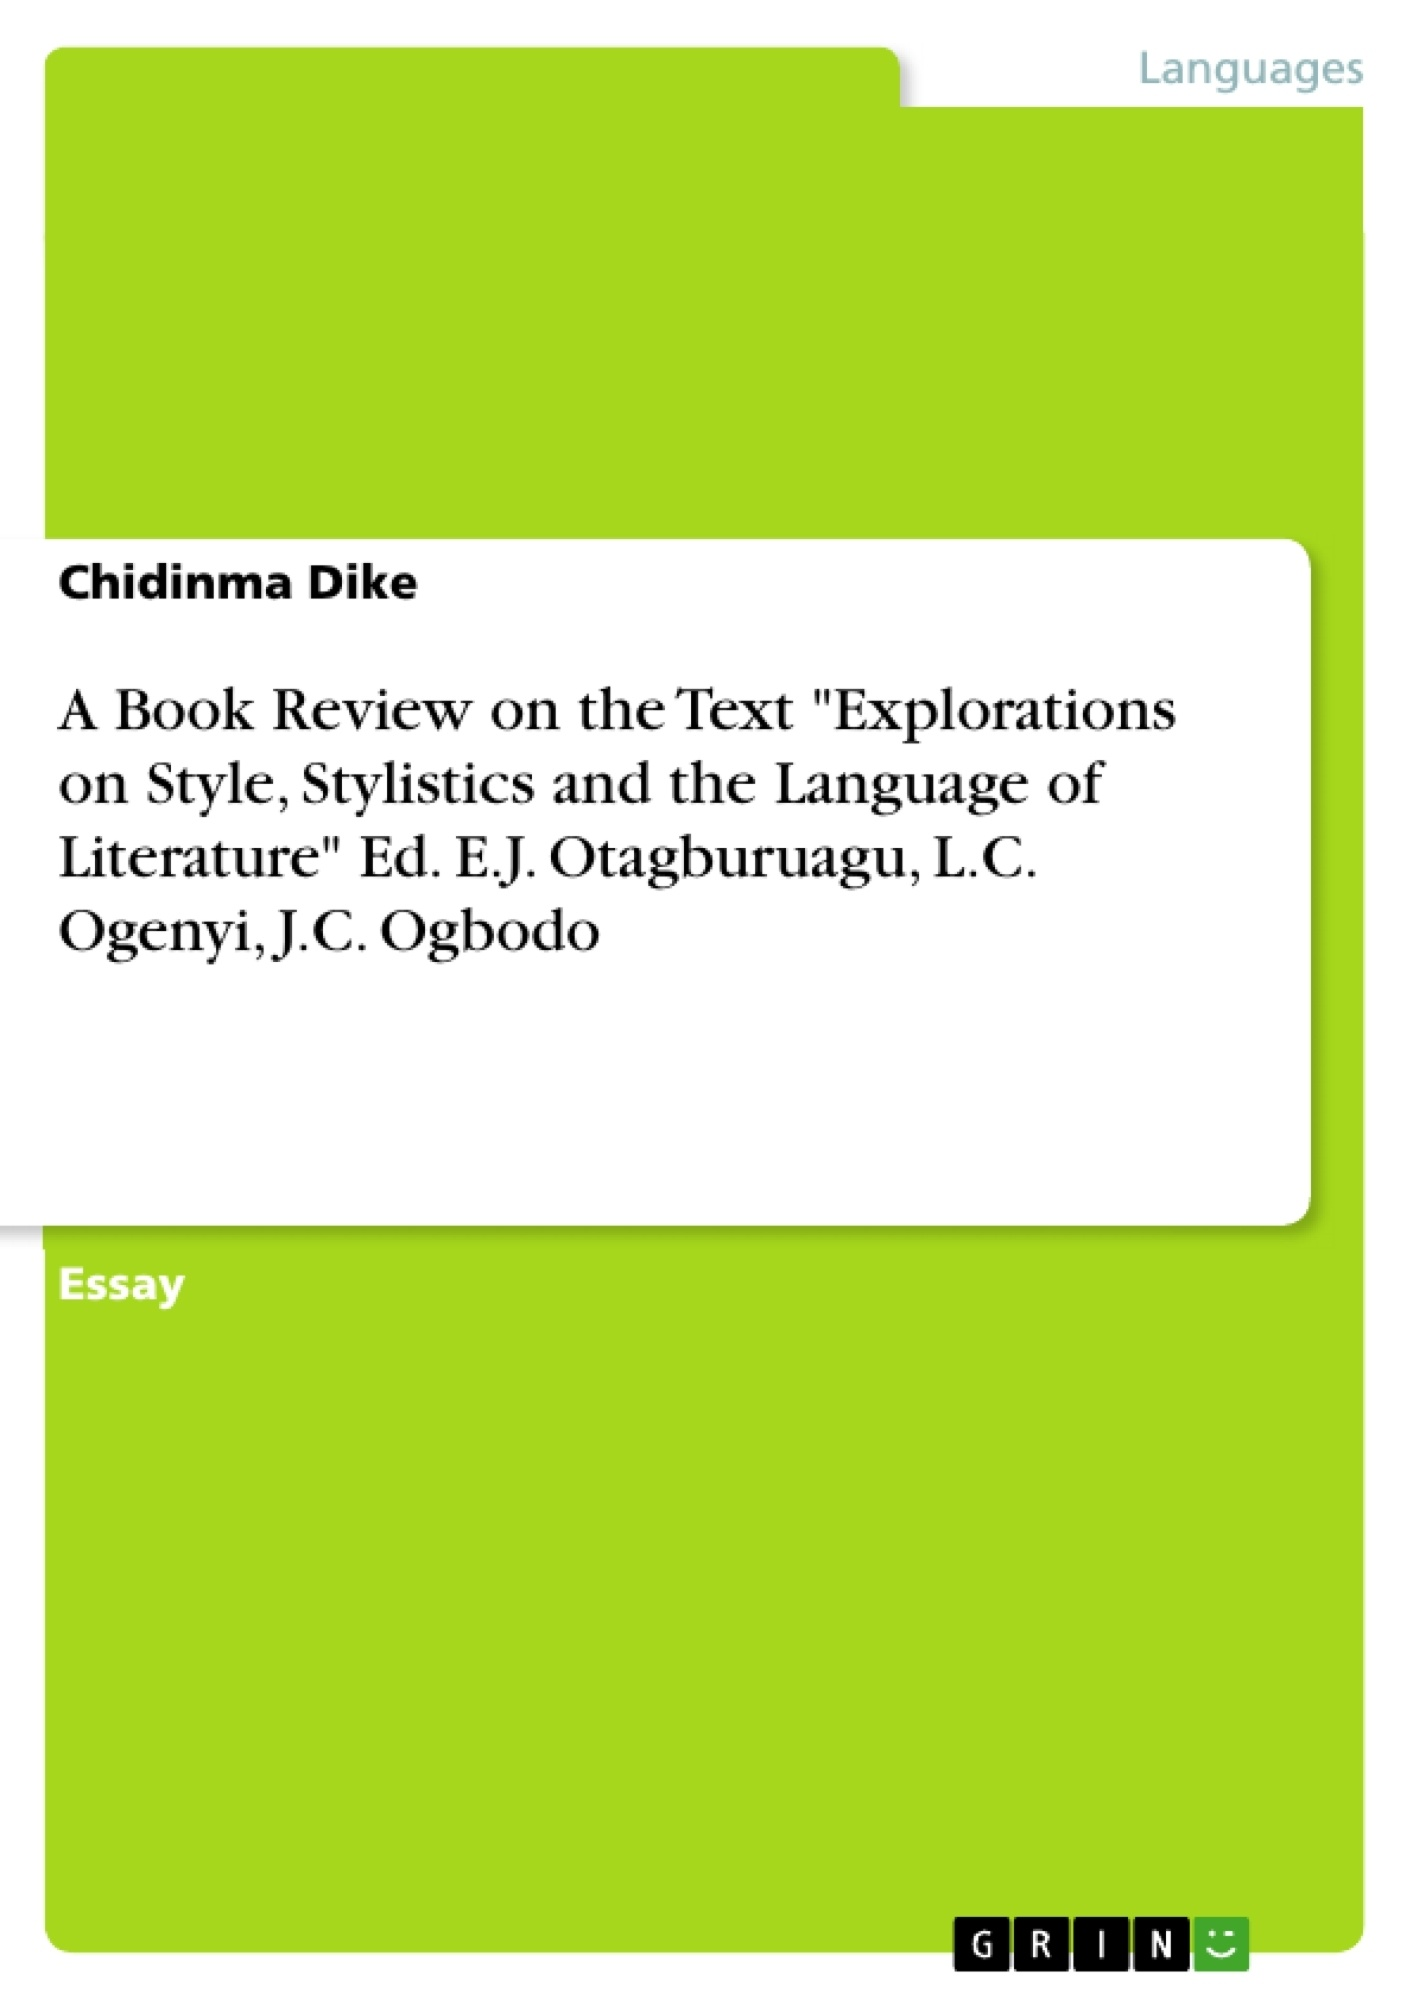 """Title: A Book Review on the Text """"Explorations on Style, Stylistics and the Language of Literature"""" Ed. E.J. Otagburuagu, L.C. Ogenyi, J.C. Ogbodo"""